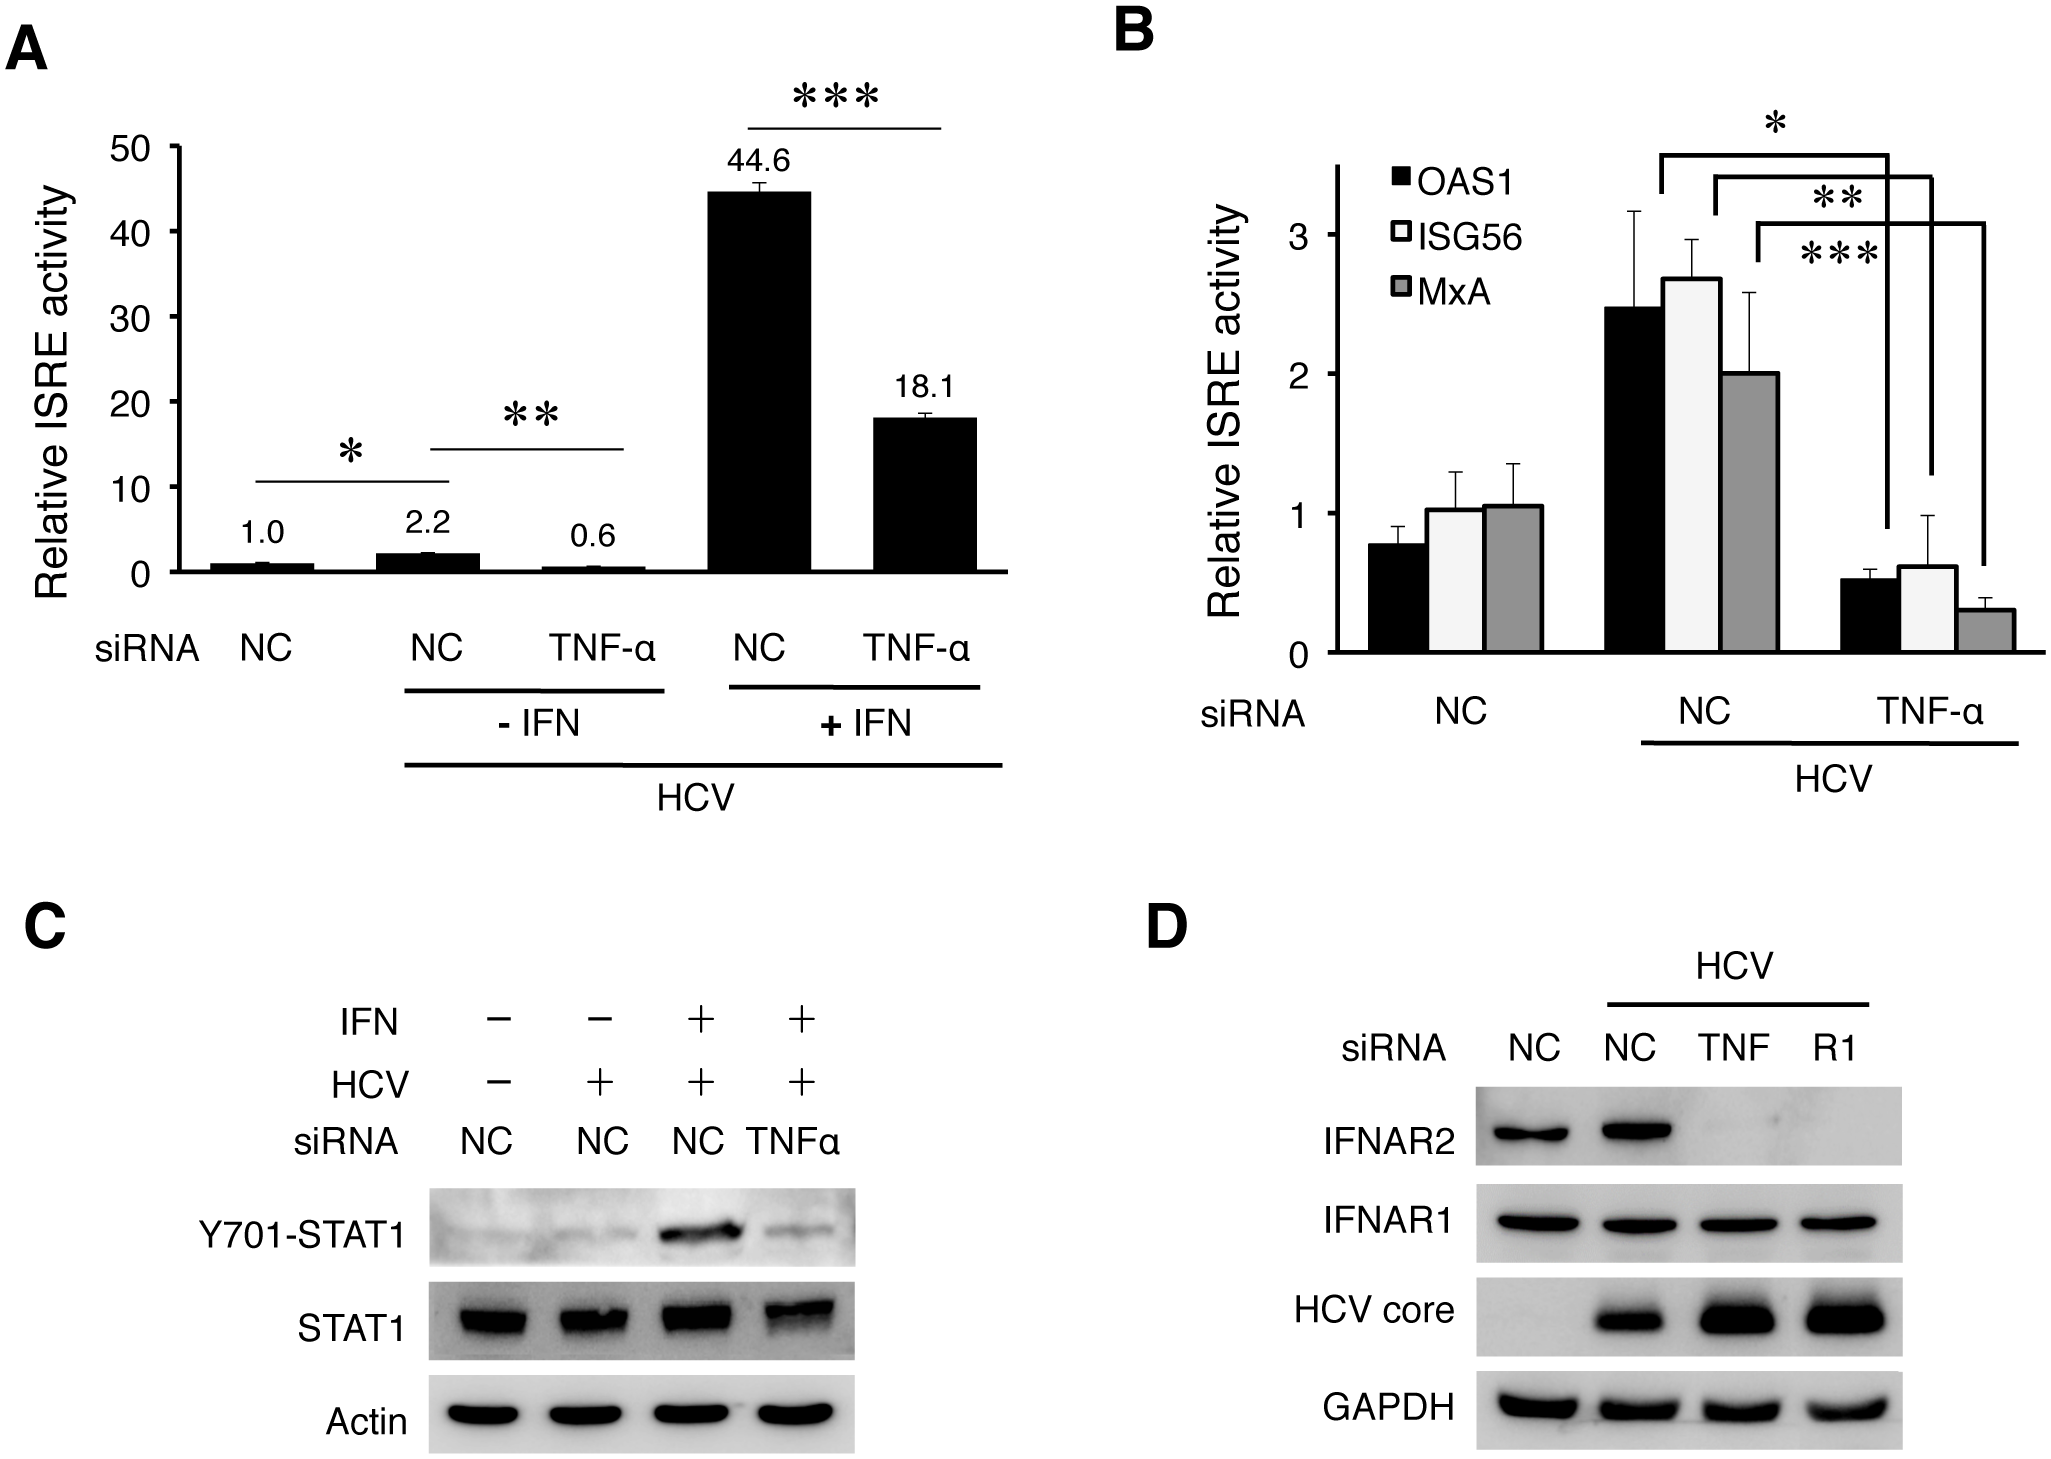 TNF-α induced by HCV is required to support IFN signaling.